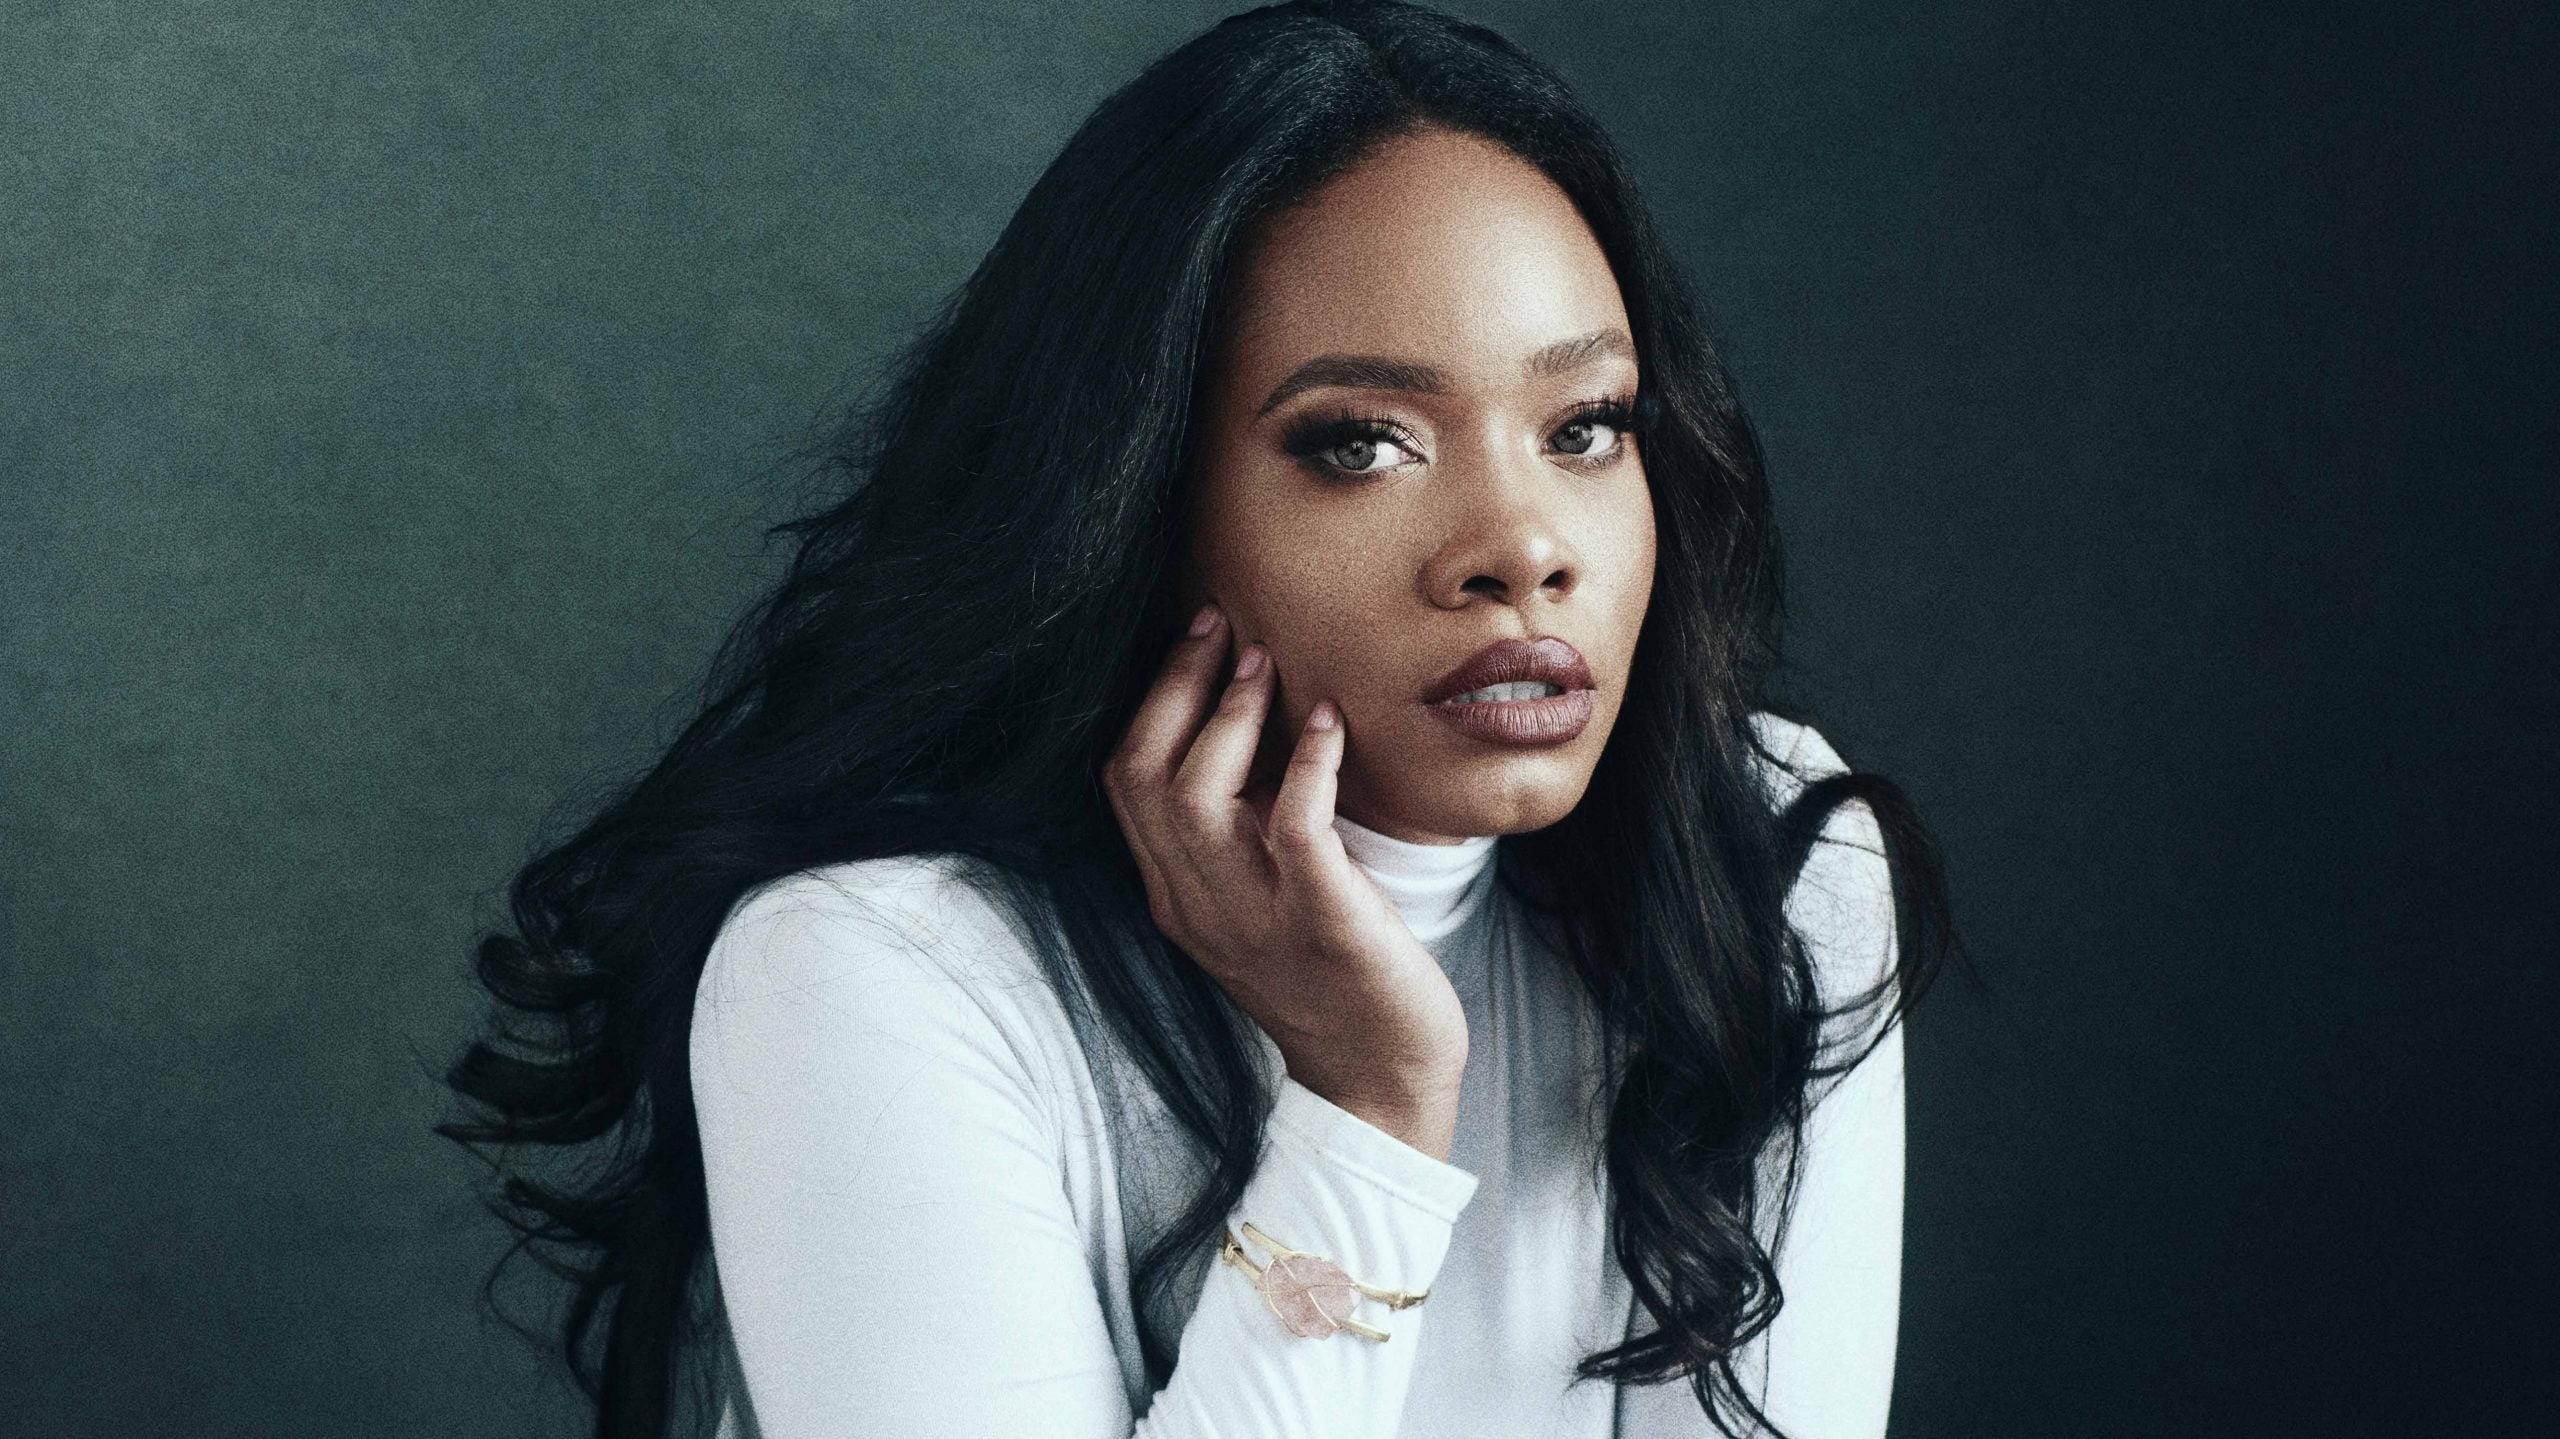 Weruche Opia On Being Tapped As Michaela Coel's Bestie In 'I May Destroy You'